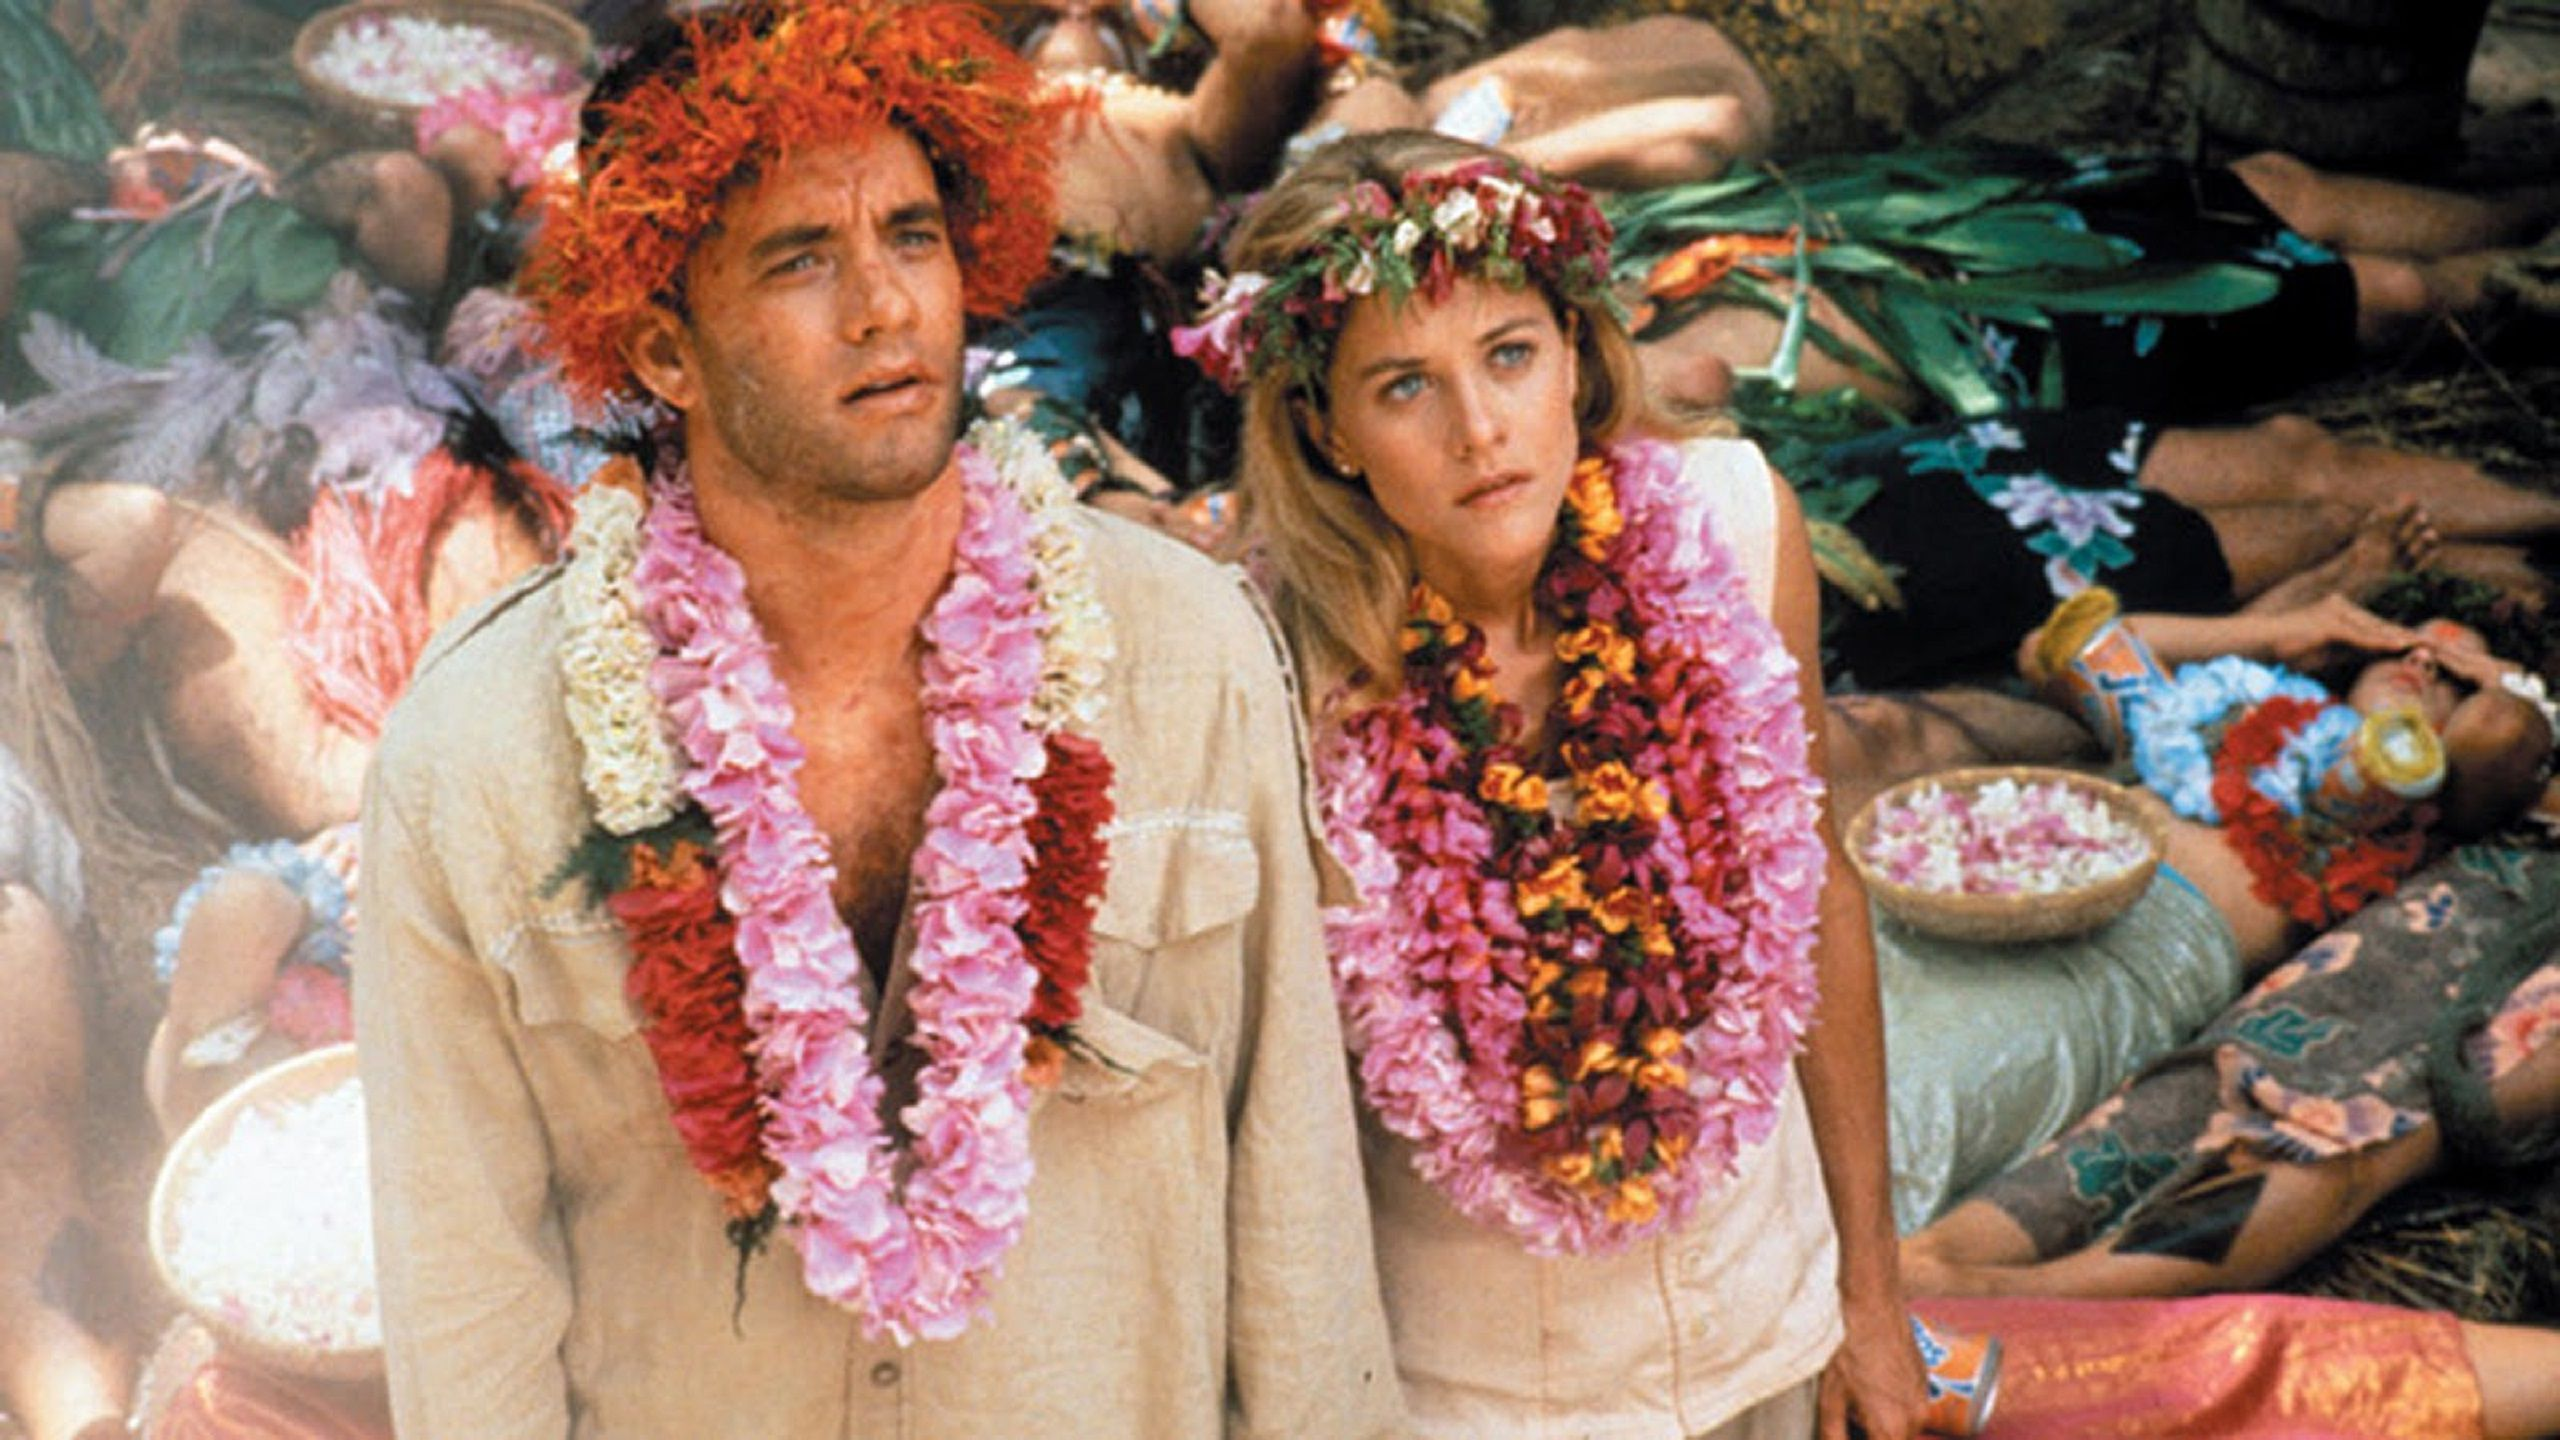 Joe versus the Volcano - Joe contro il Vulcano (1990) Tom Hanks & Meg Ryan